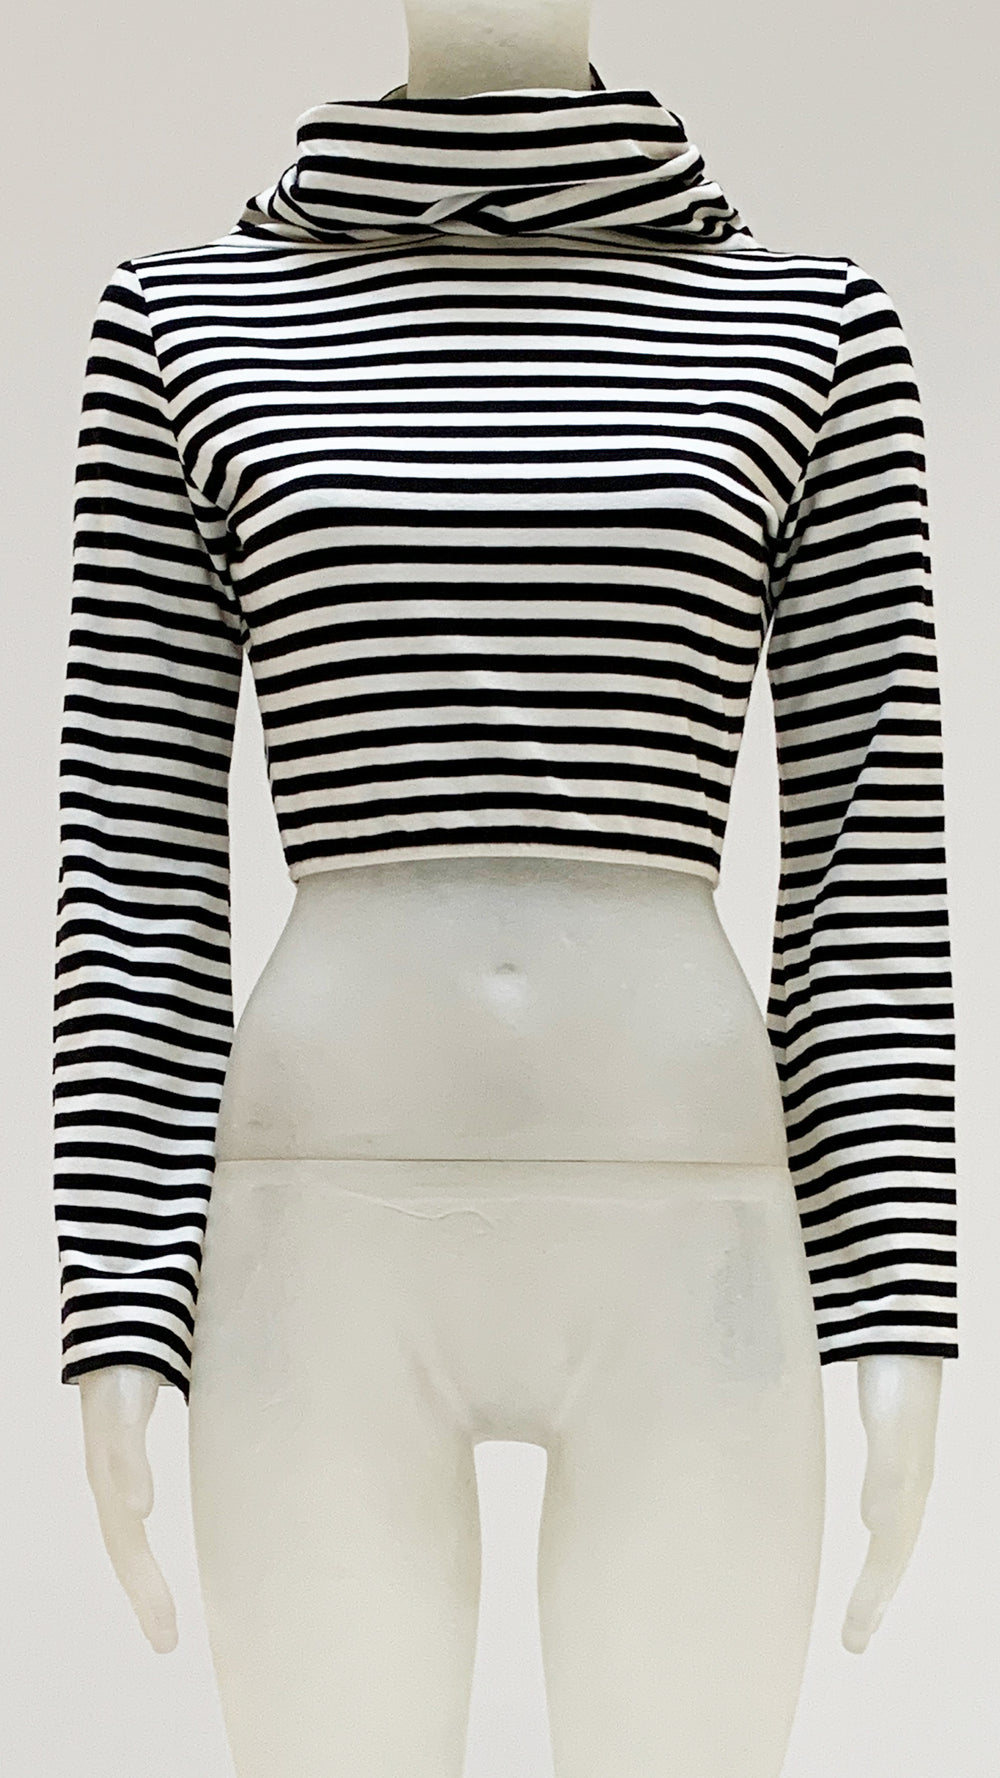 LONG SLEEVE CROPPED TURTLE TOP - 1